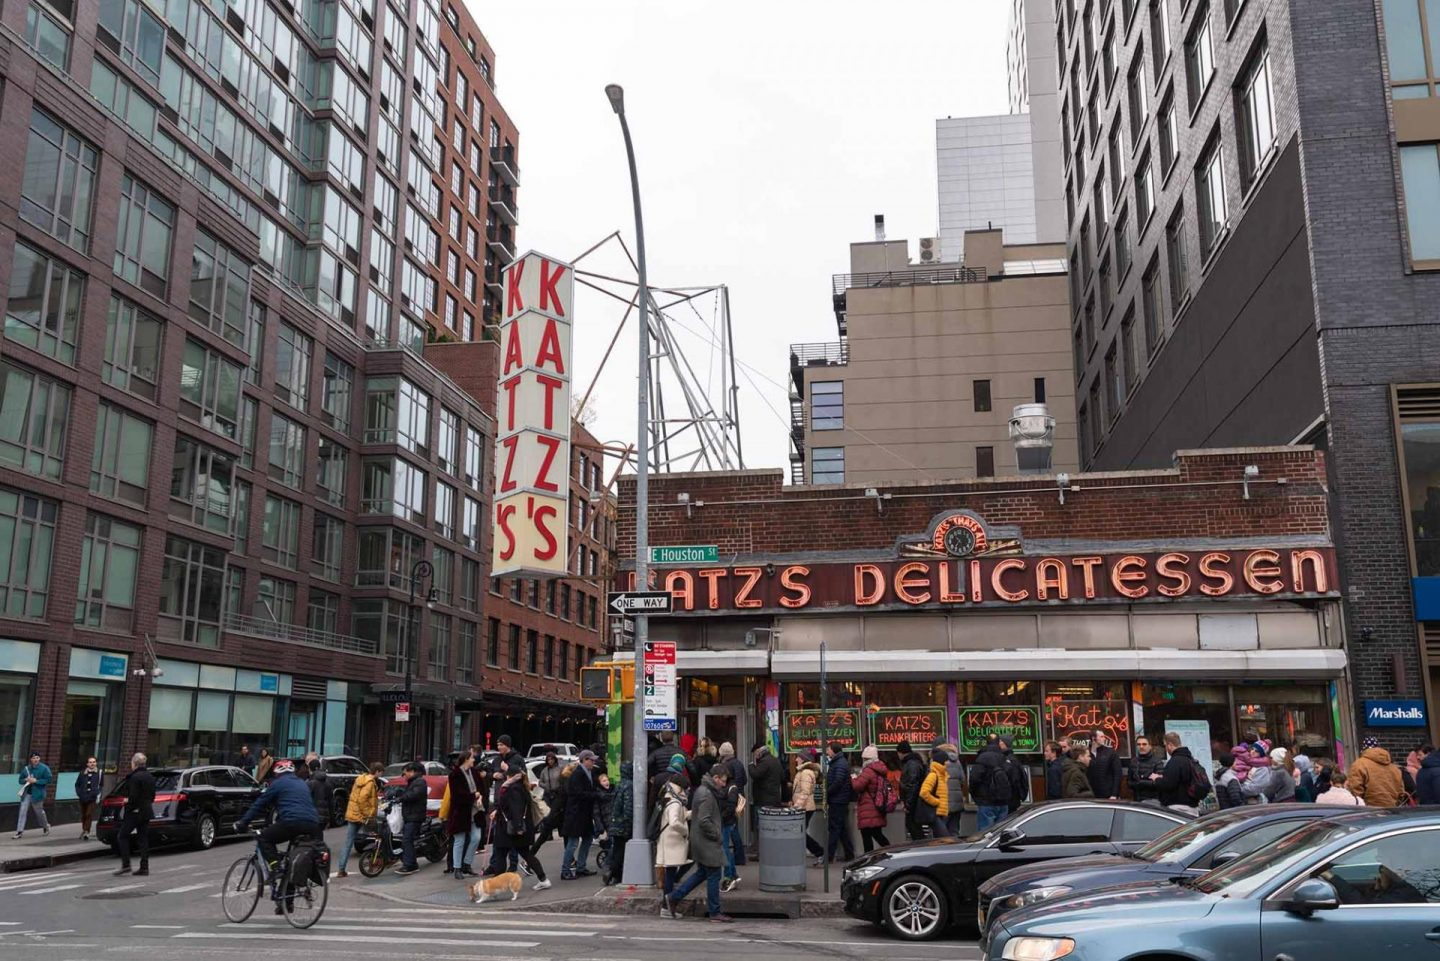 Lunch at Katz's Delicatessen.